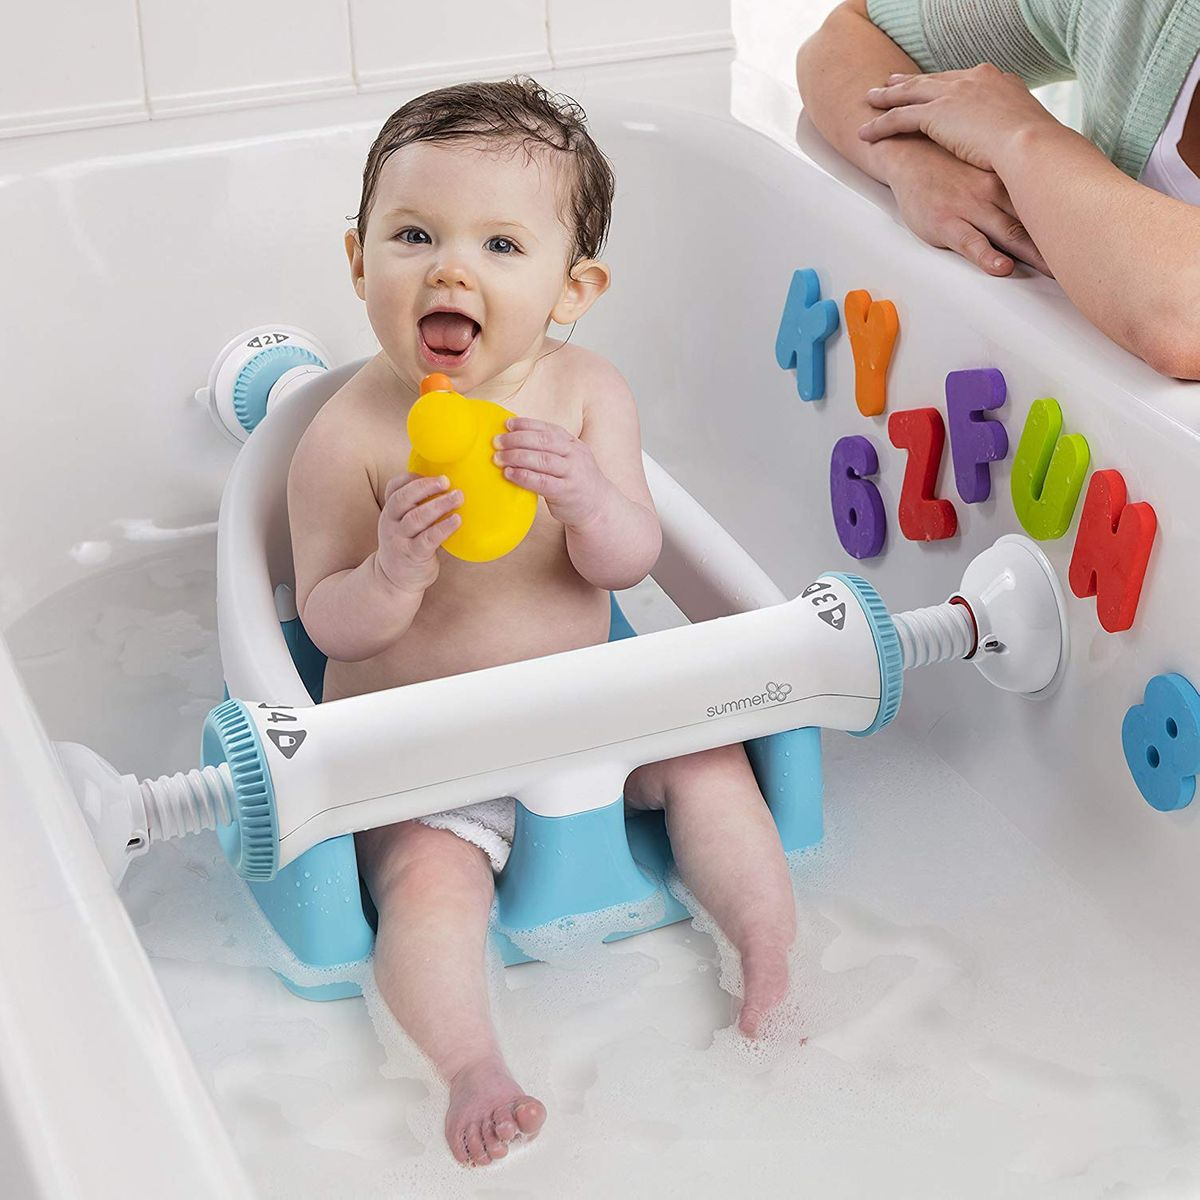 Baby bath aids allow support of your baby